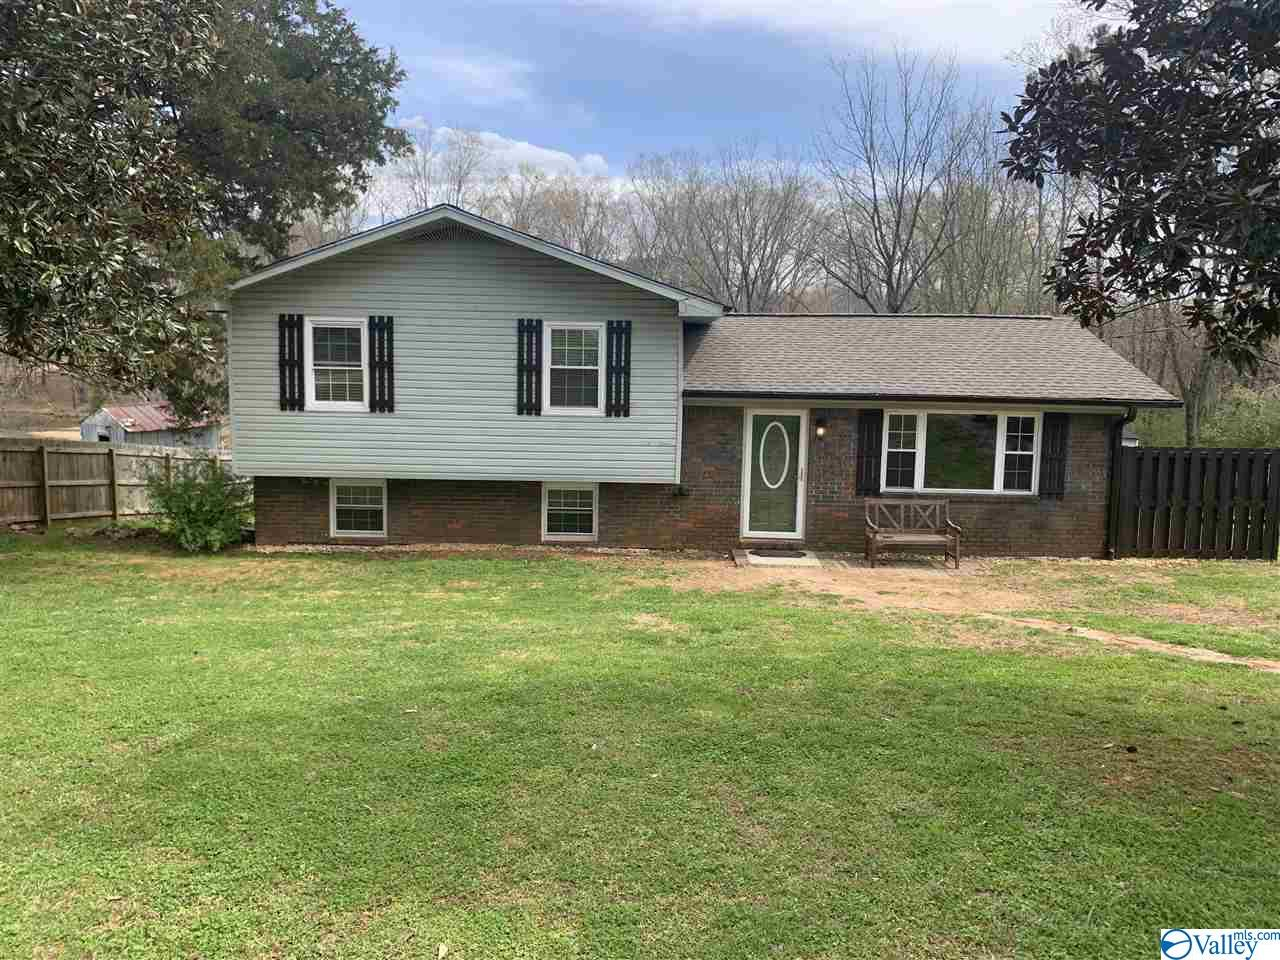 148 RUBY DRIVE, HUNTSVILLE, Alabama 35811, 3 Bedrooms Bedrooms, ,2 BathroomsBathrooms,Single Family,For Sale,148 RUBY DRIVE,1776749